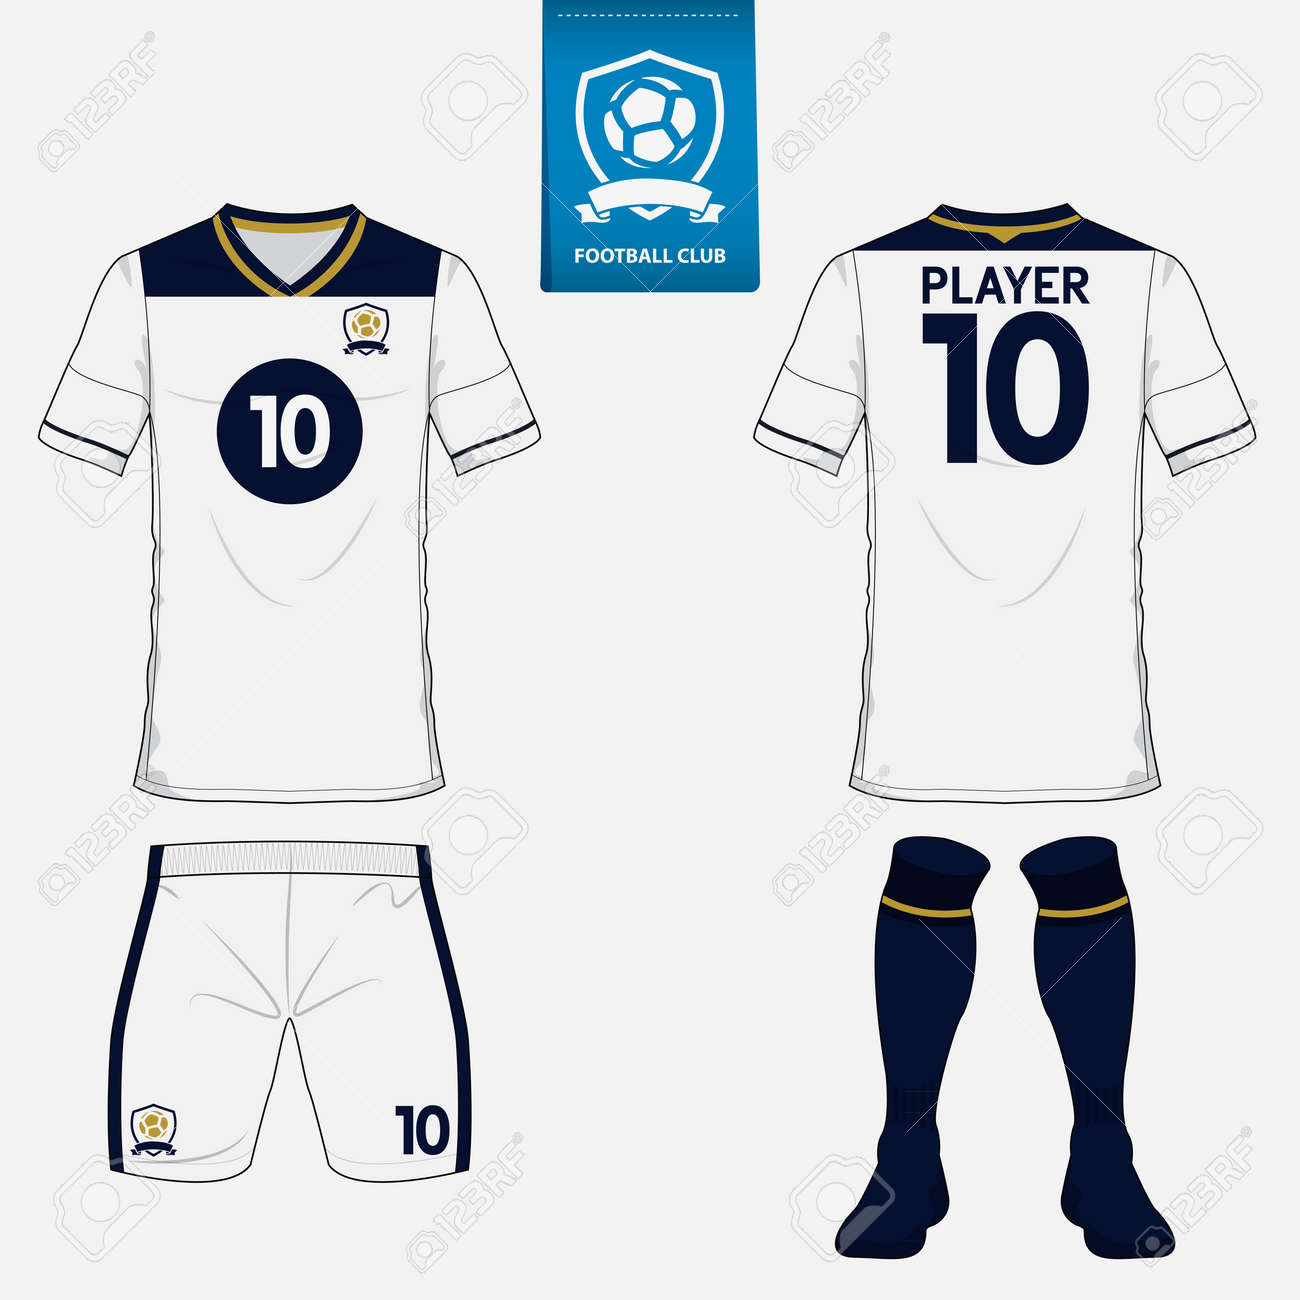 6d54a18c4 Set of soccer kit or football jersey template for football club. Flat logo  on blue